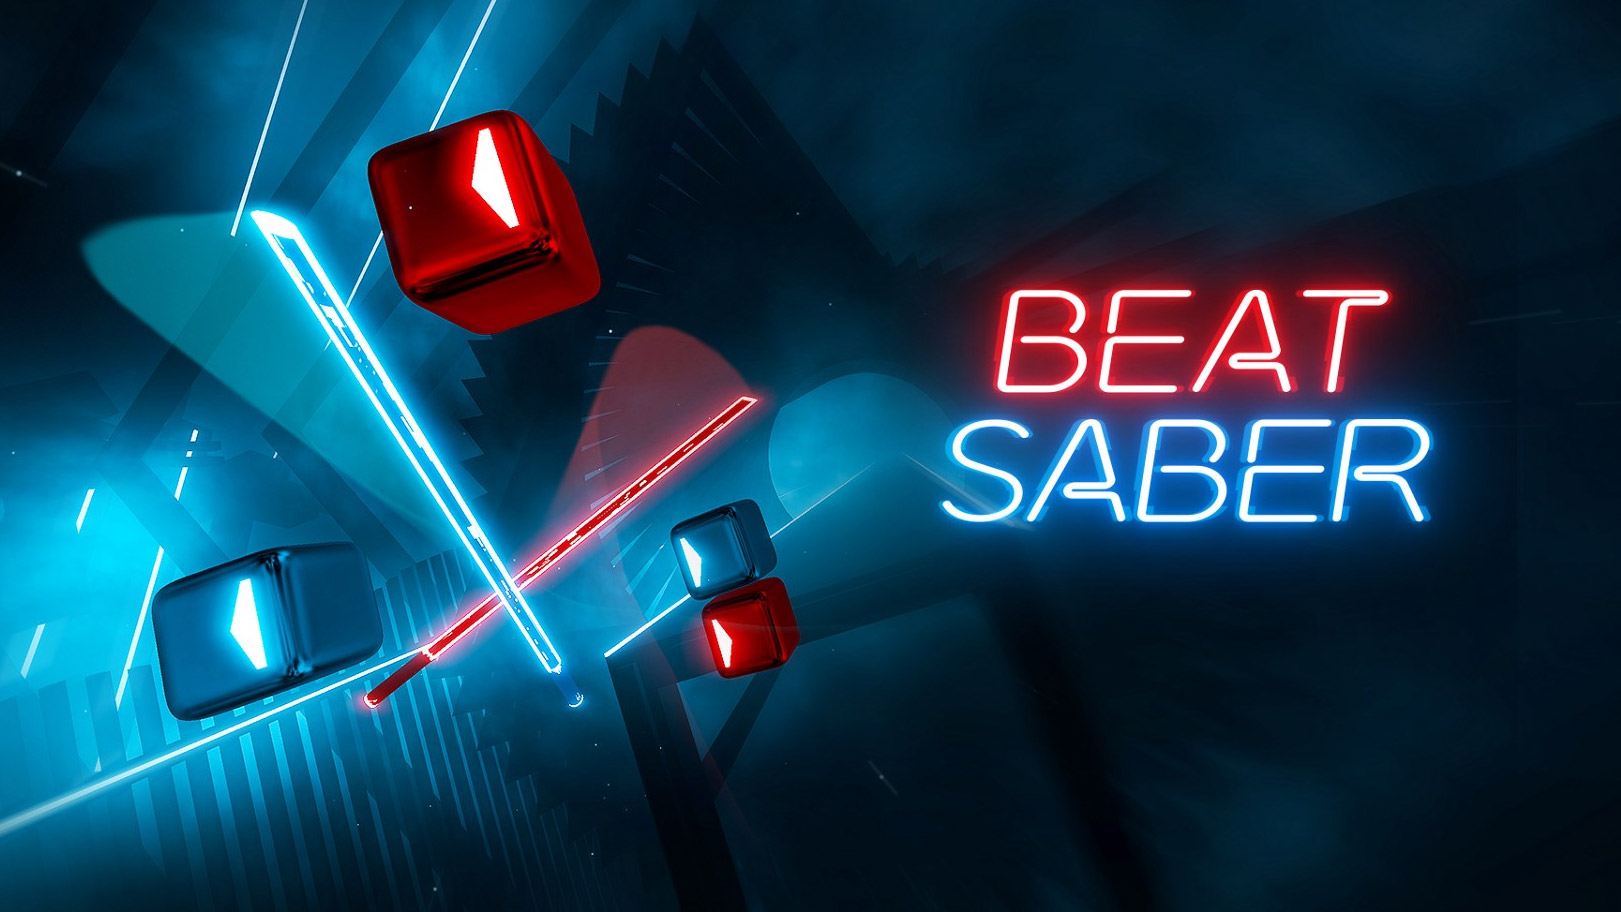 'Beat Saber' Gets First Paid Music Pack, Update Brings Previous PSVR Exclusives to PC